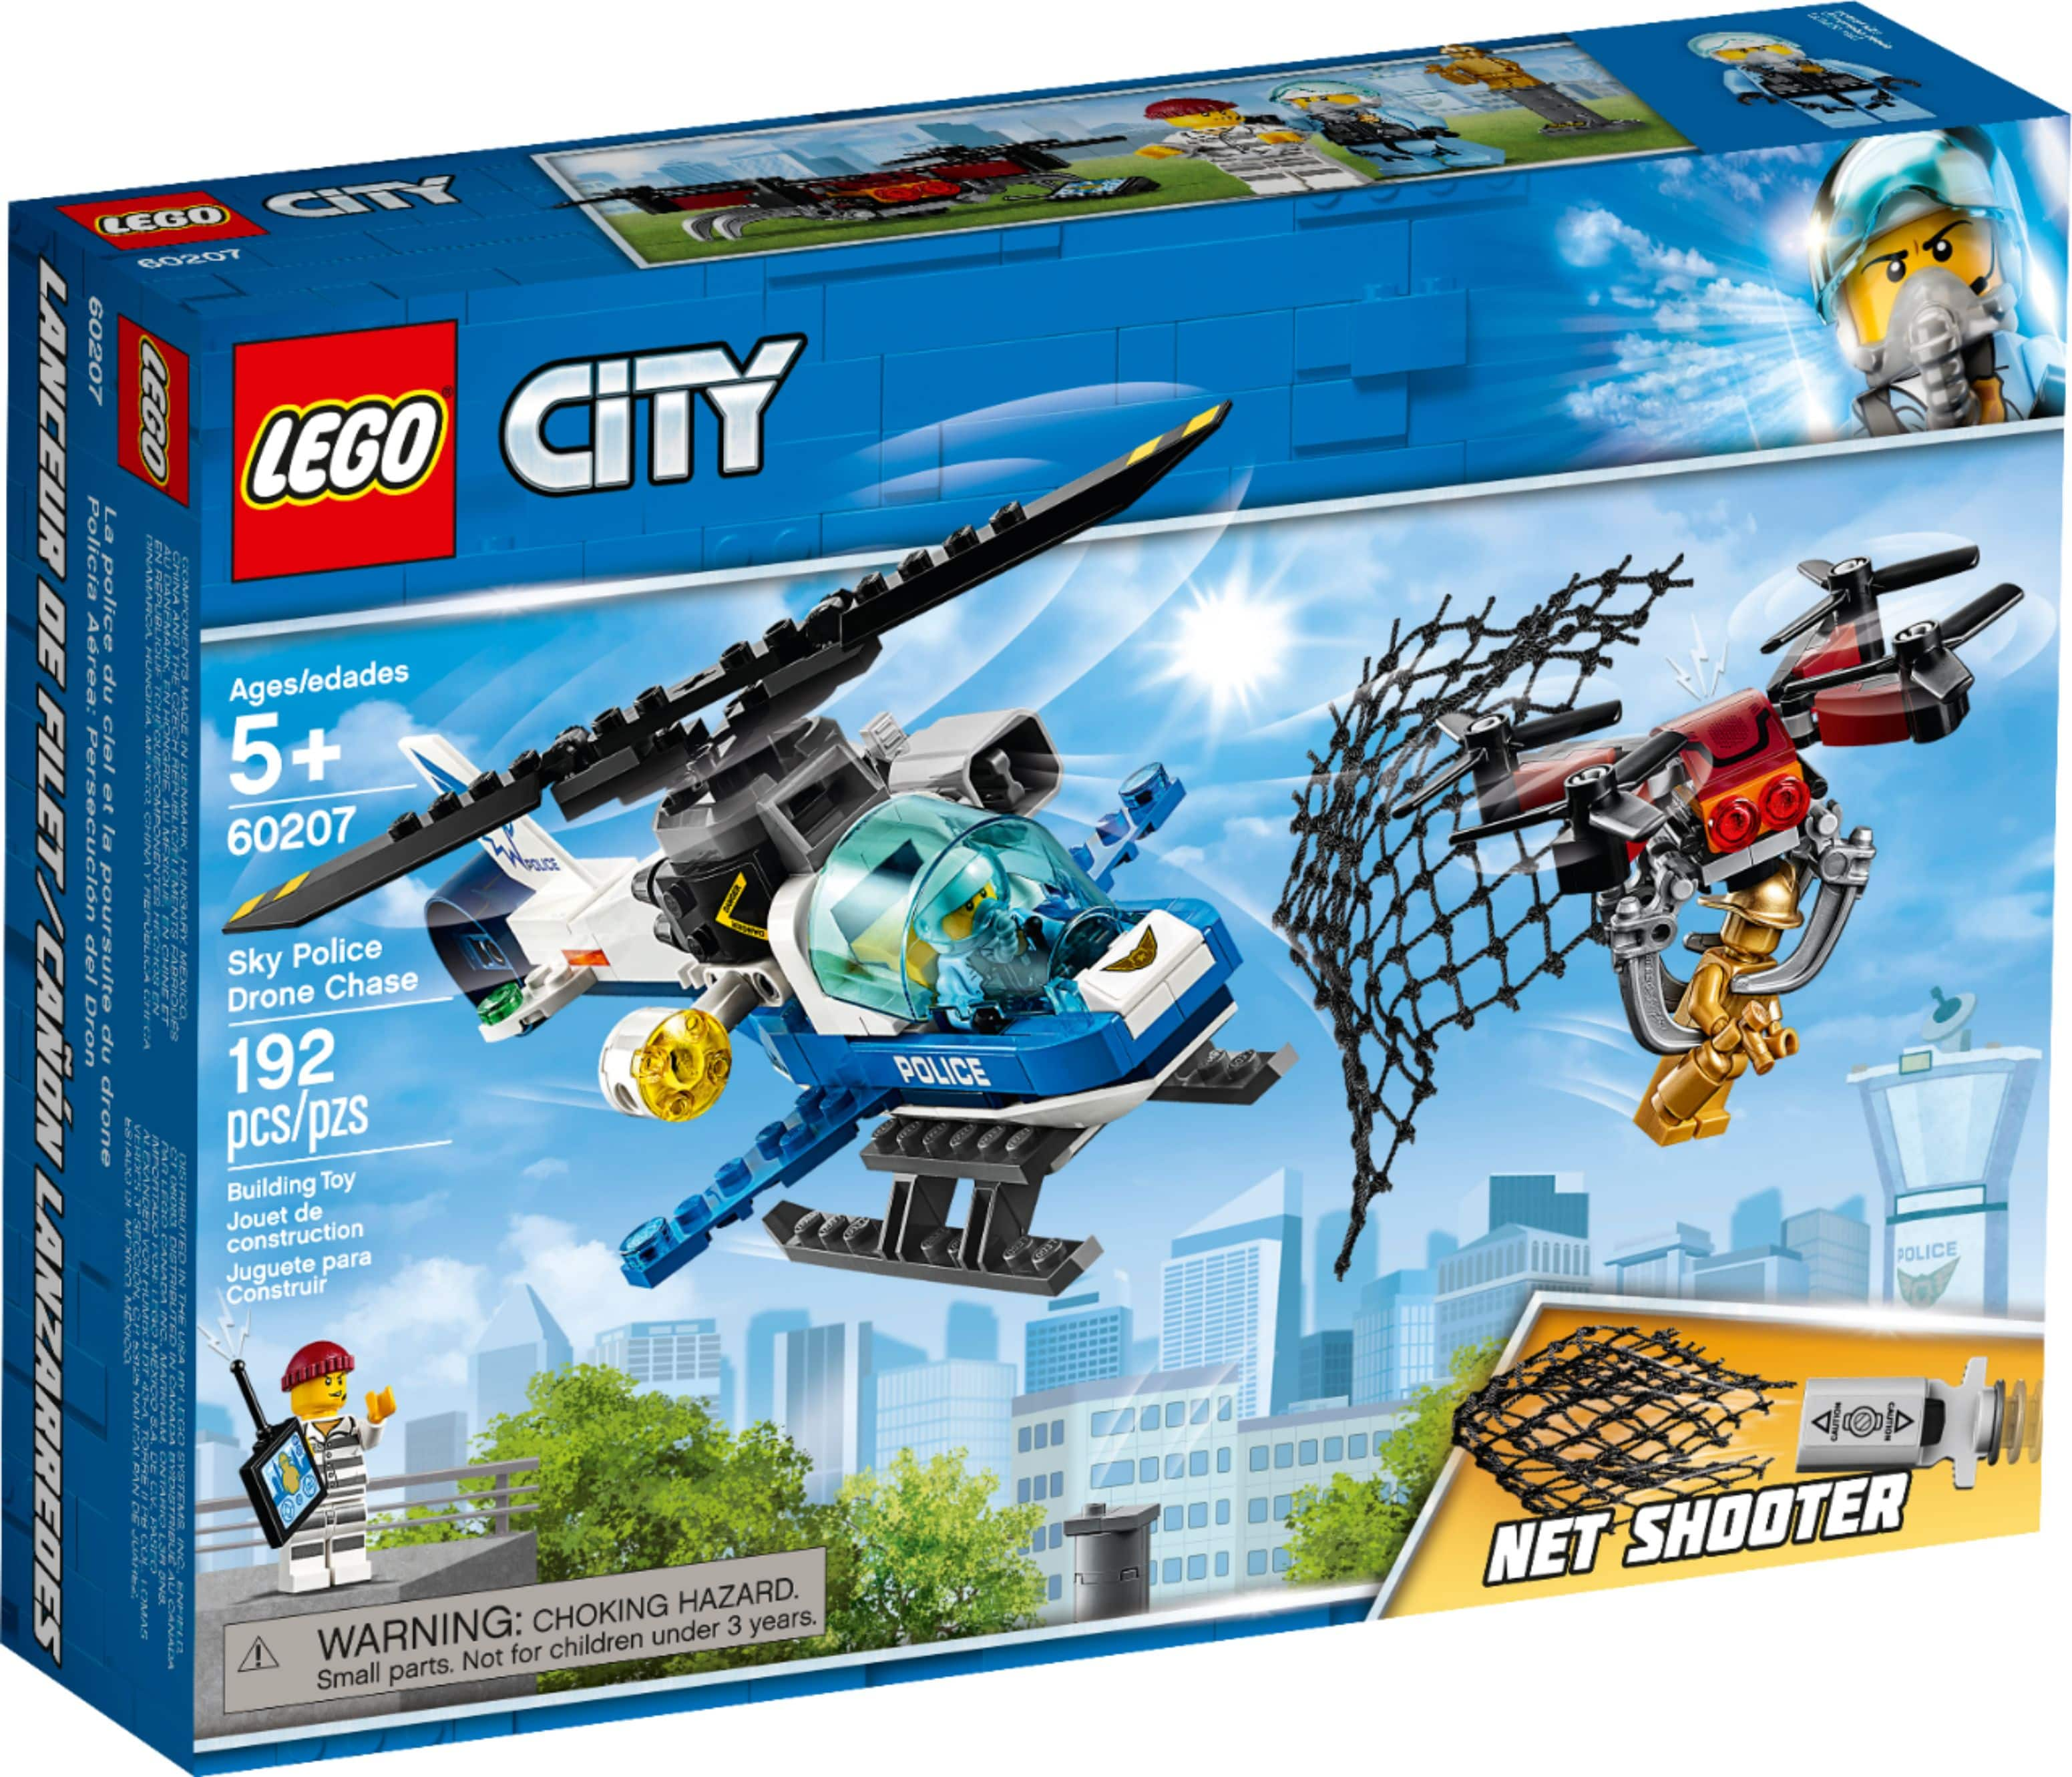 LEGO City Sky Police Drone Chase 60207 $20 at Macy's + Free S&H on $25+